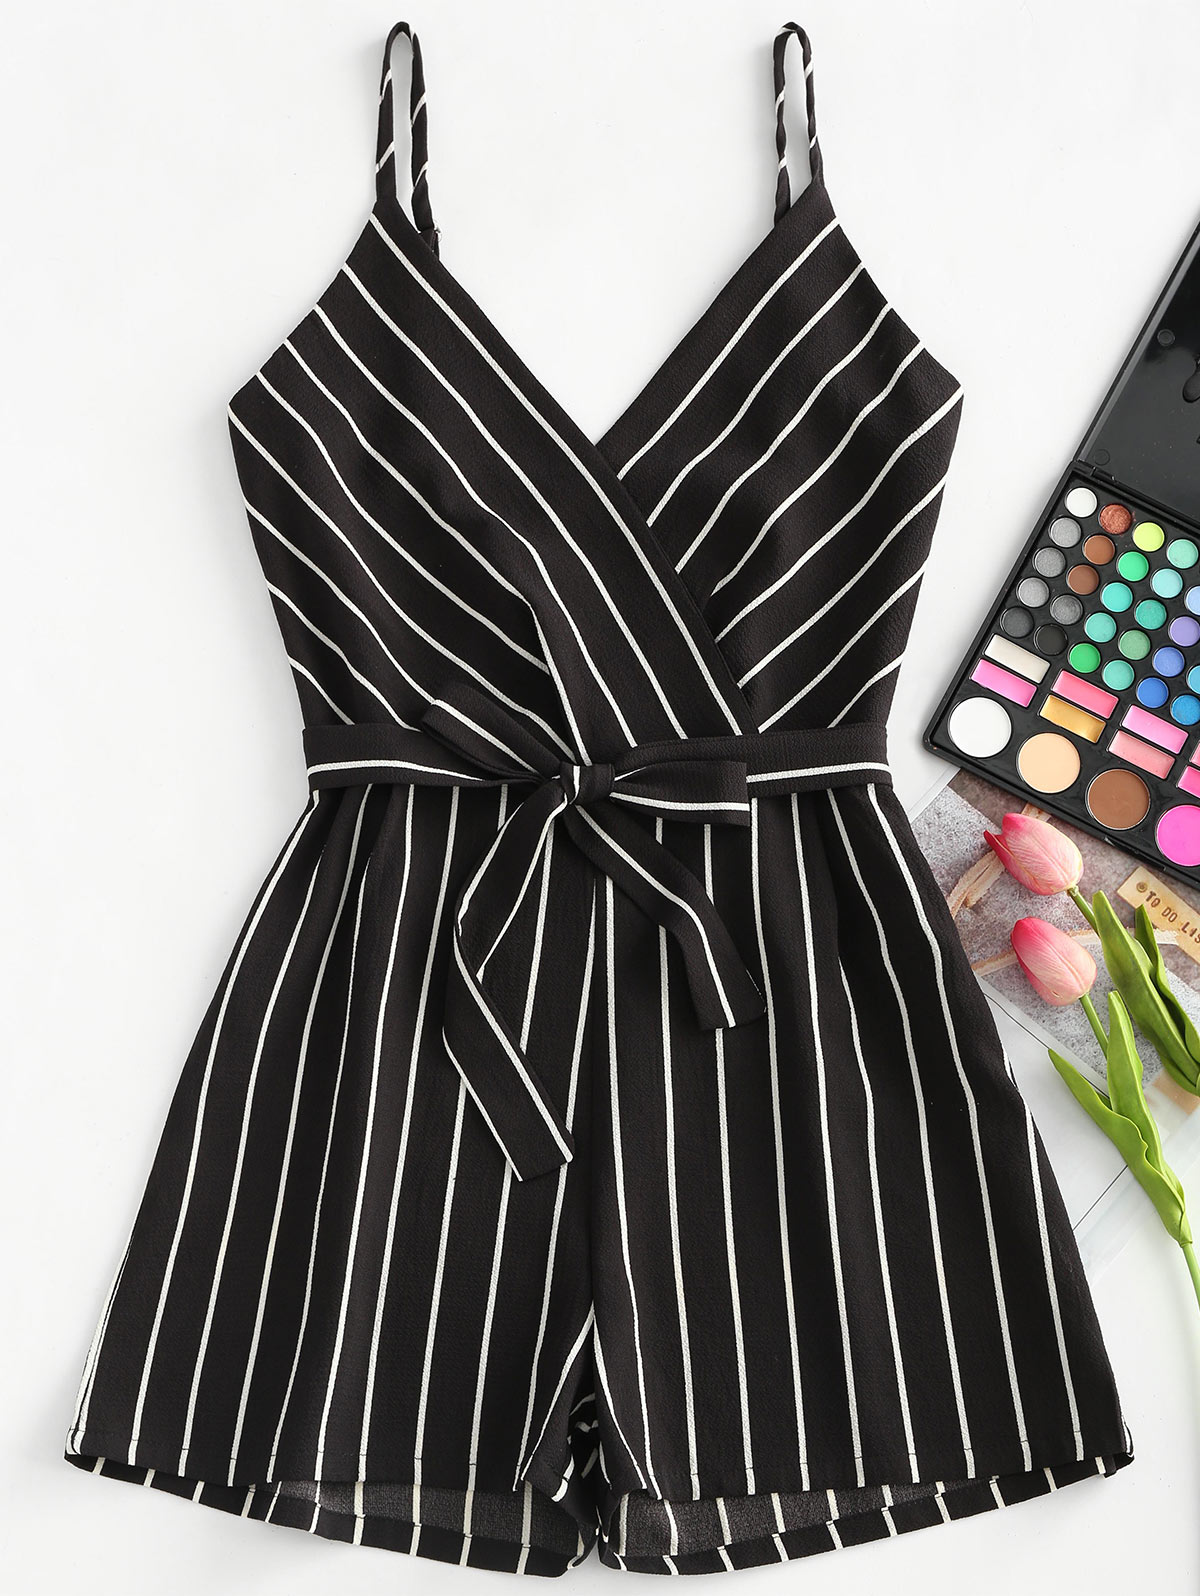 ZAN.STYLE Summer Stripe Spaghetti Strap Belt Women Jumpsuit Casual Halter Bow Knot Tied Beach Romper Zip Up Overalls For Women